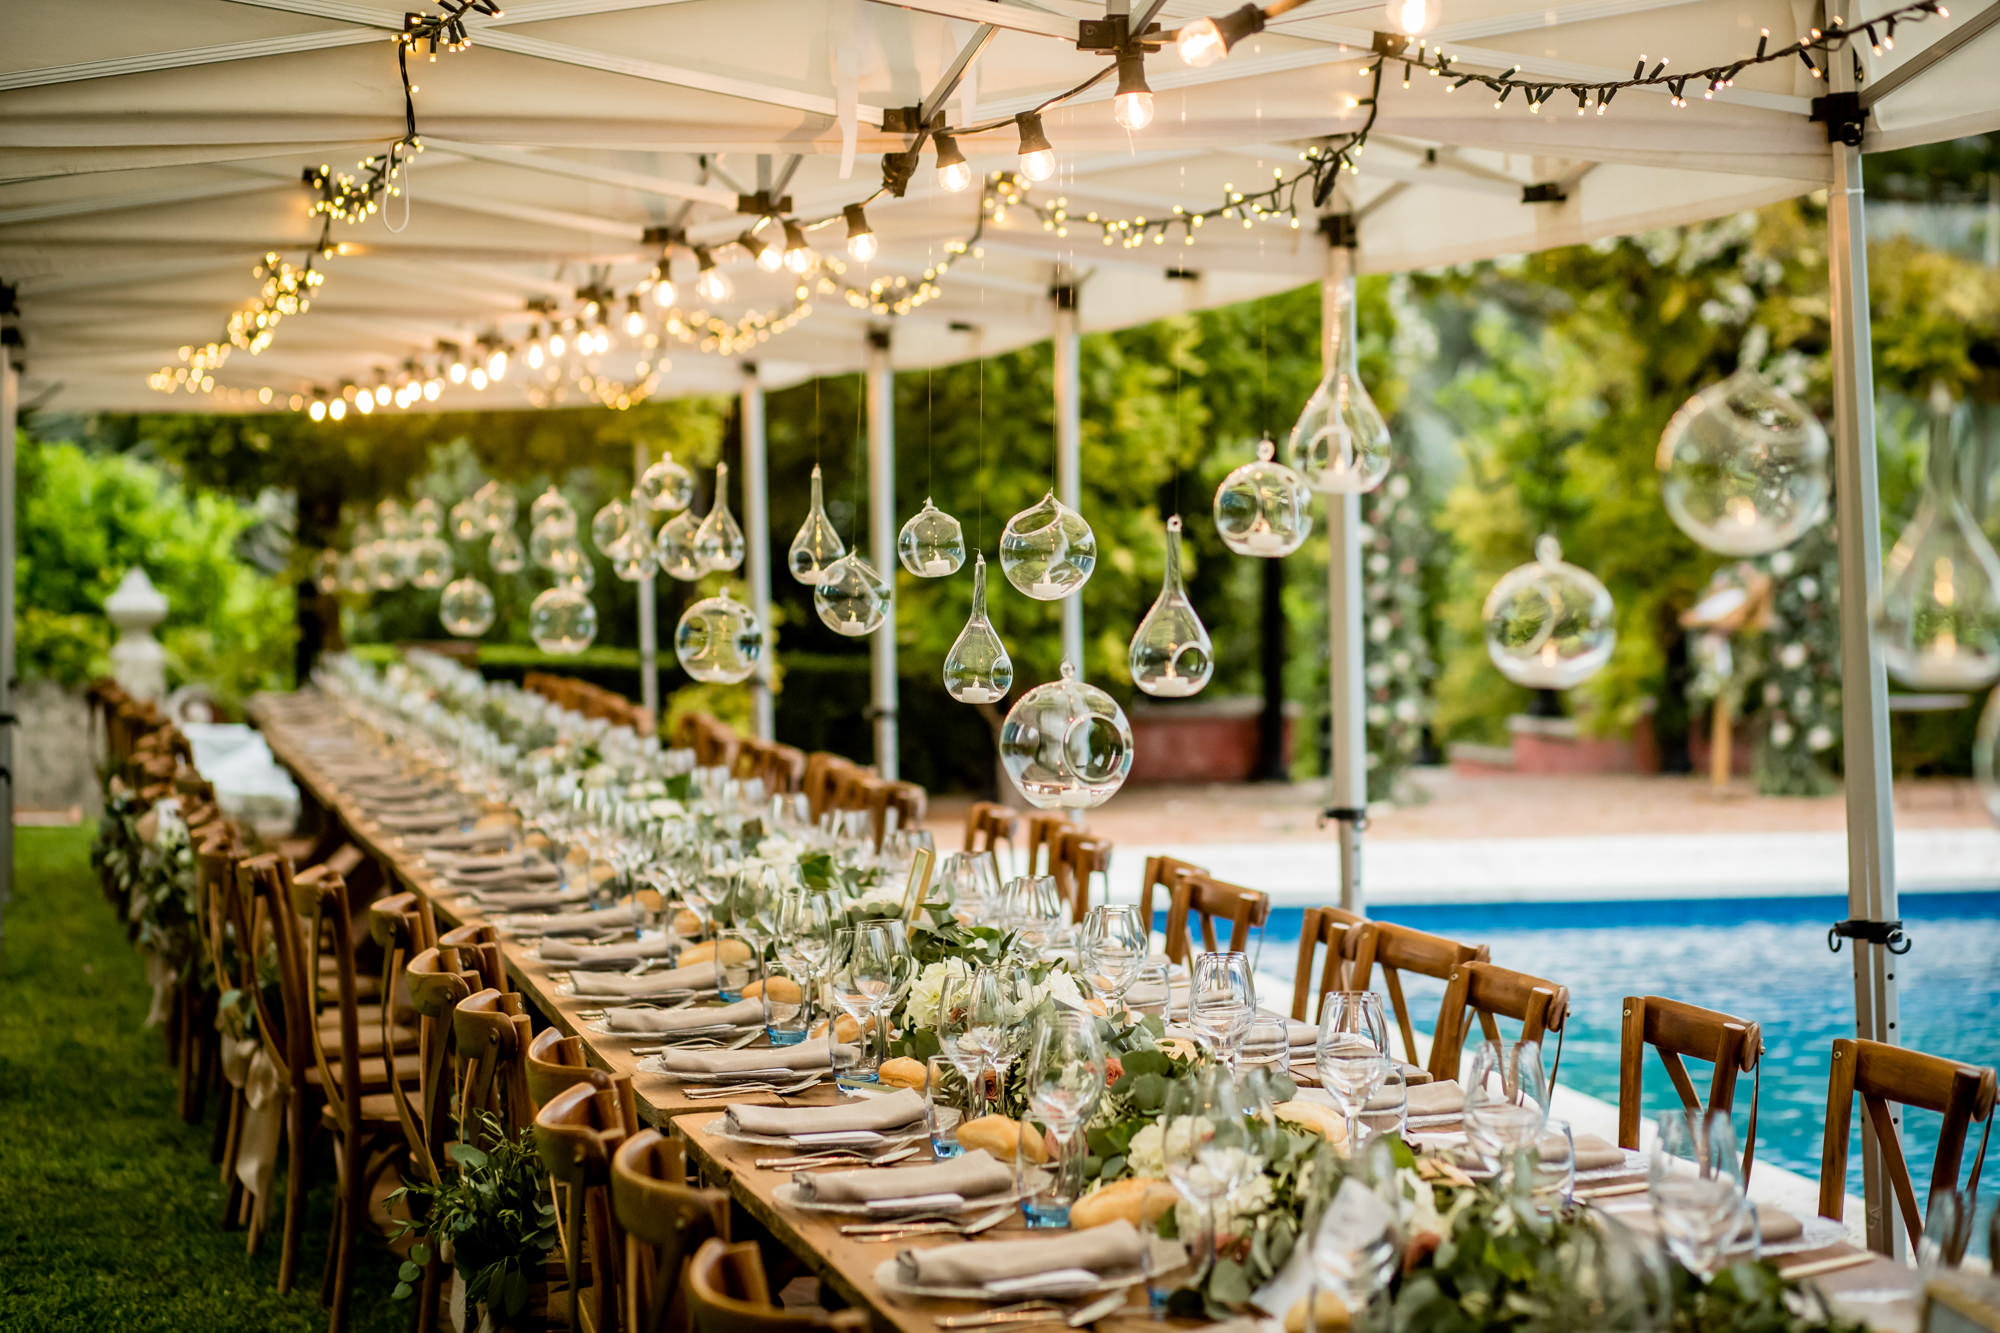 Reception table with wood chairs and hanging glass decor photo by Eppel photography